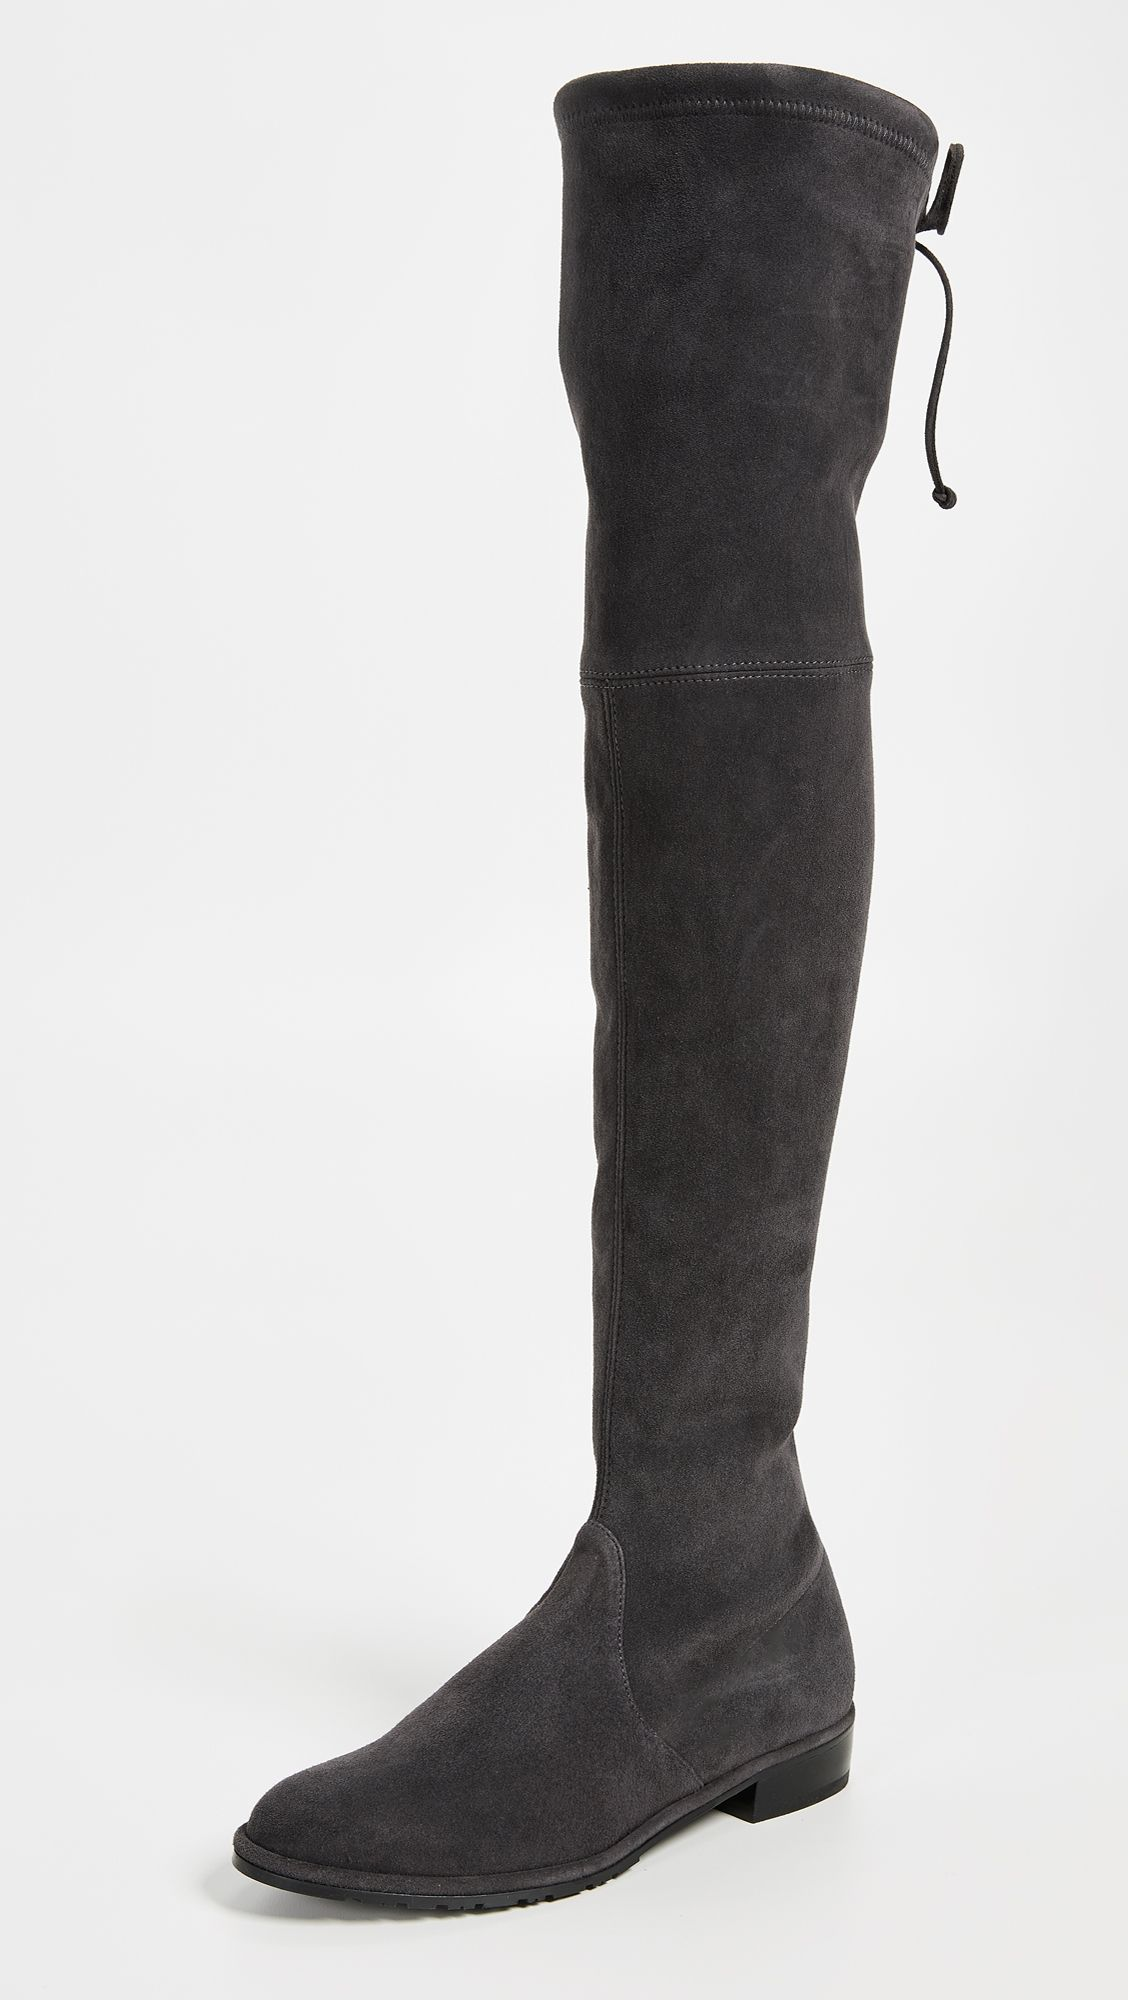 2c1d46457c7e Stuart Weitzman Lowland Over the Knee Boots in 2019 | Products ...